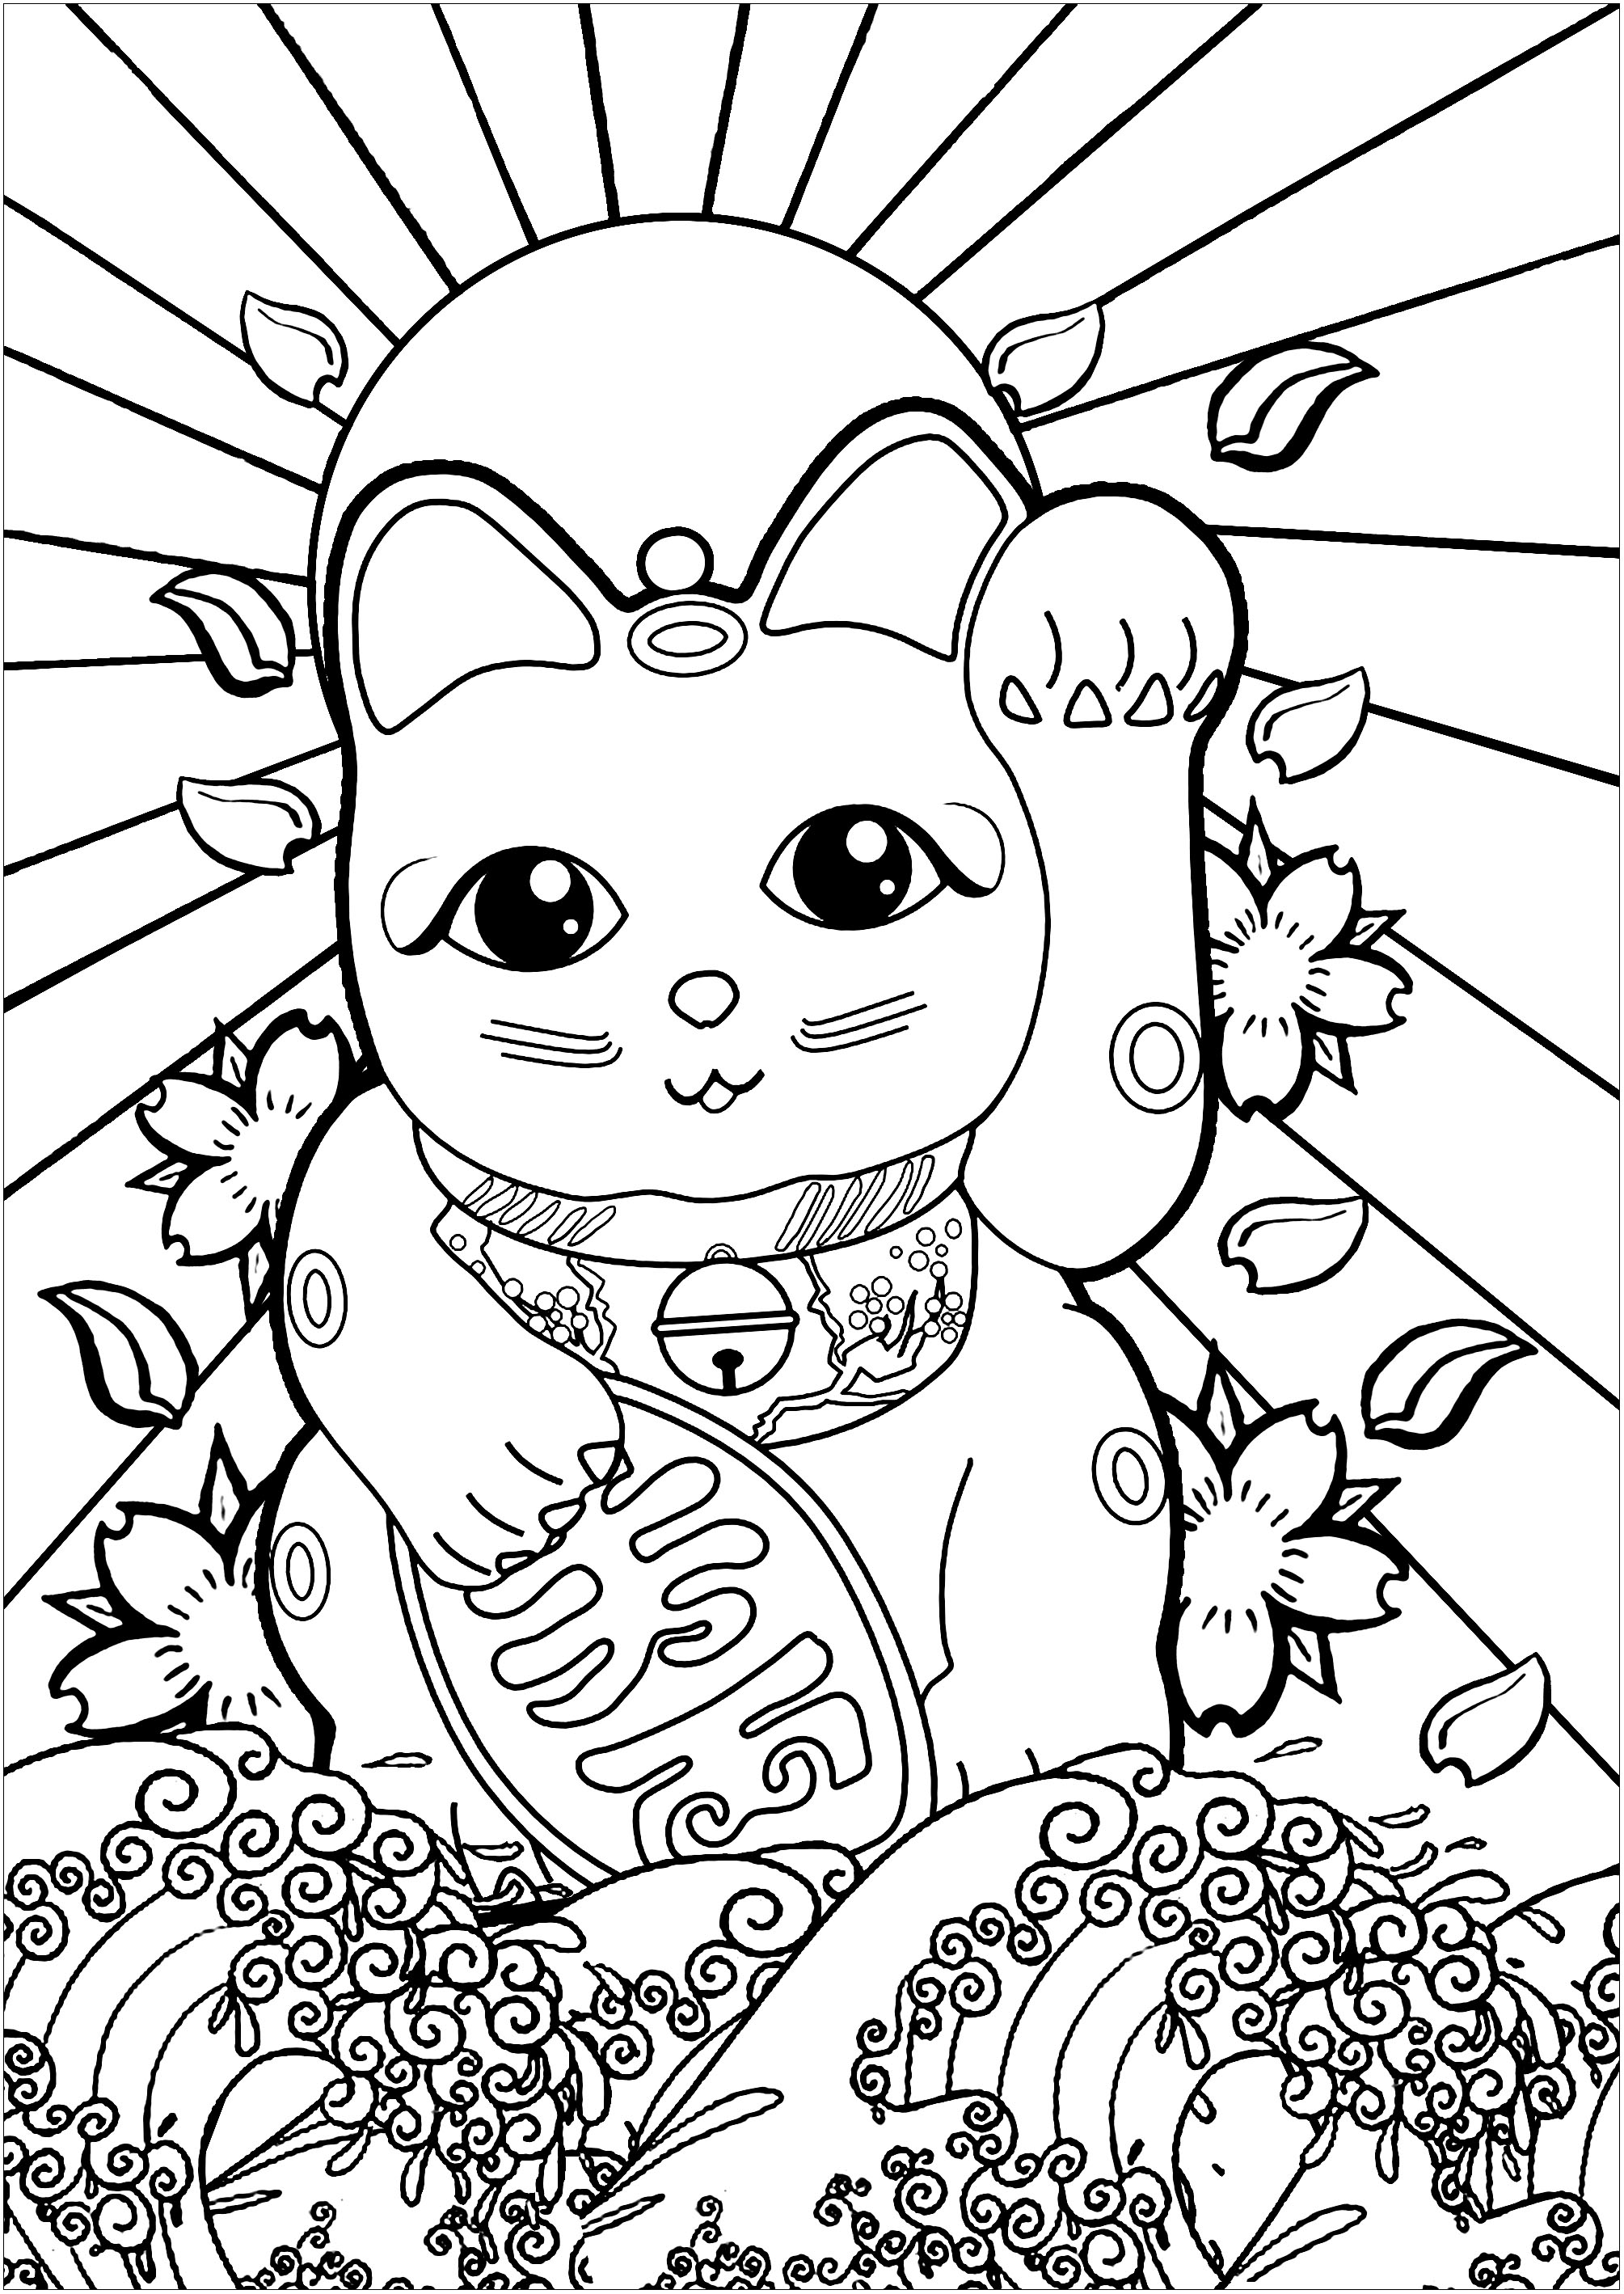 Cute Maneki Neko with other symbols of Japon : Rising Sun Flag, Cherry blossom flowers and The Great Wave off Kanagawa !